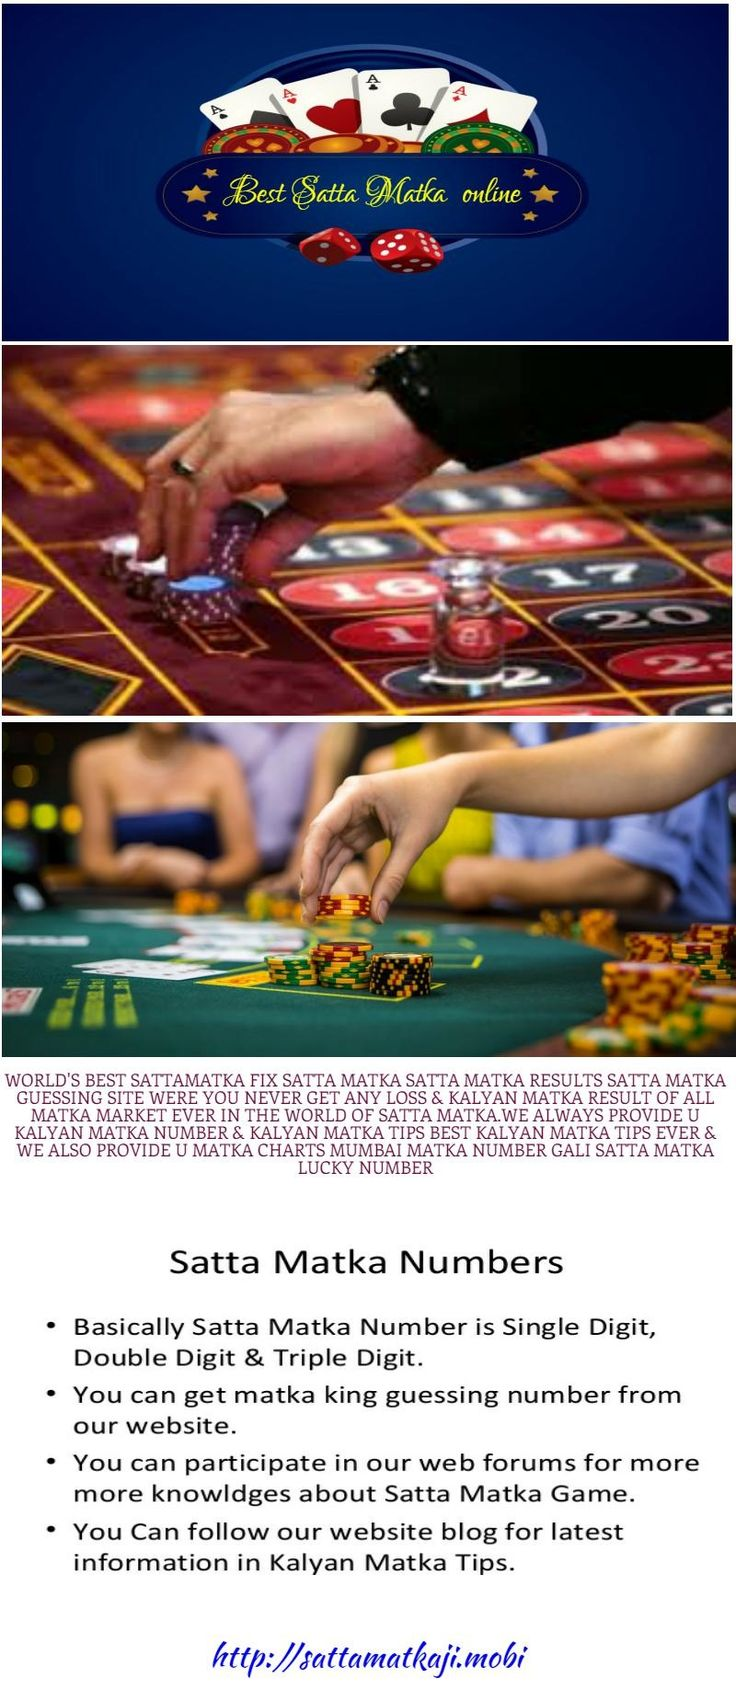 The Satta Matka market  The renowned SattaMatka market all around the world, offers easier and friendly game rules and recovery.